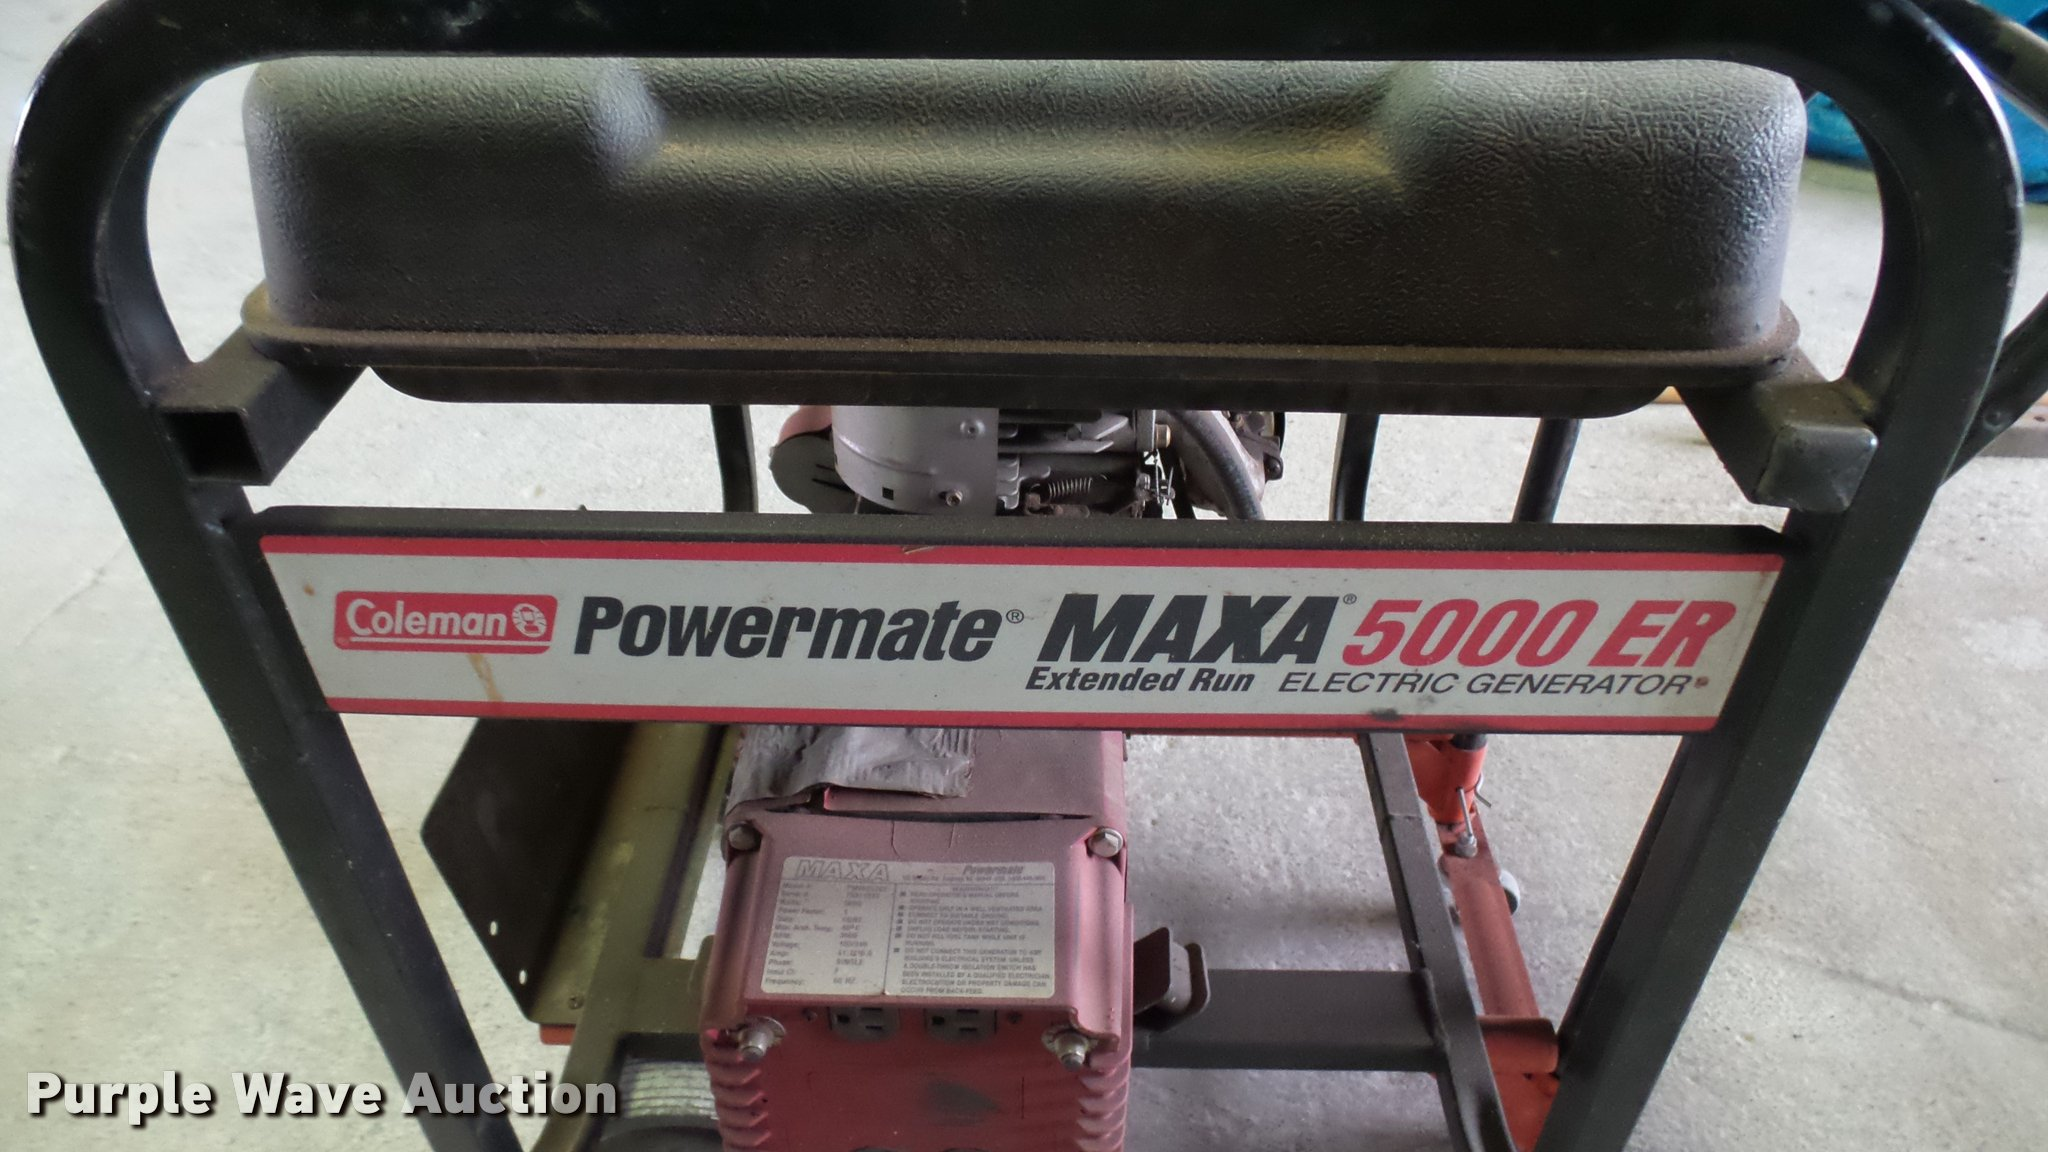 ... Coleman Powermate Maxa 5000ER generator Full size in new window ...